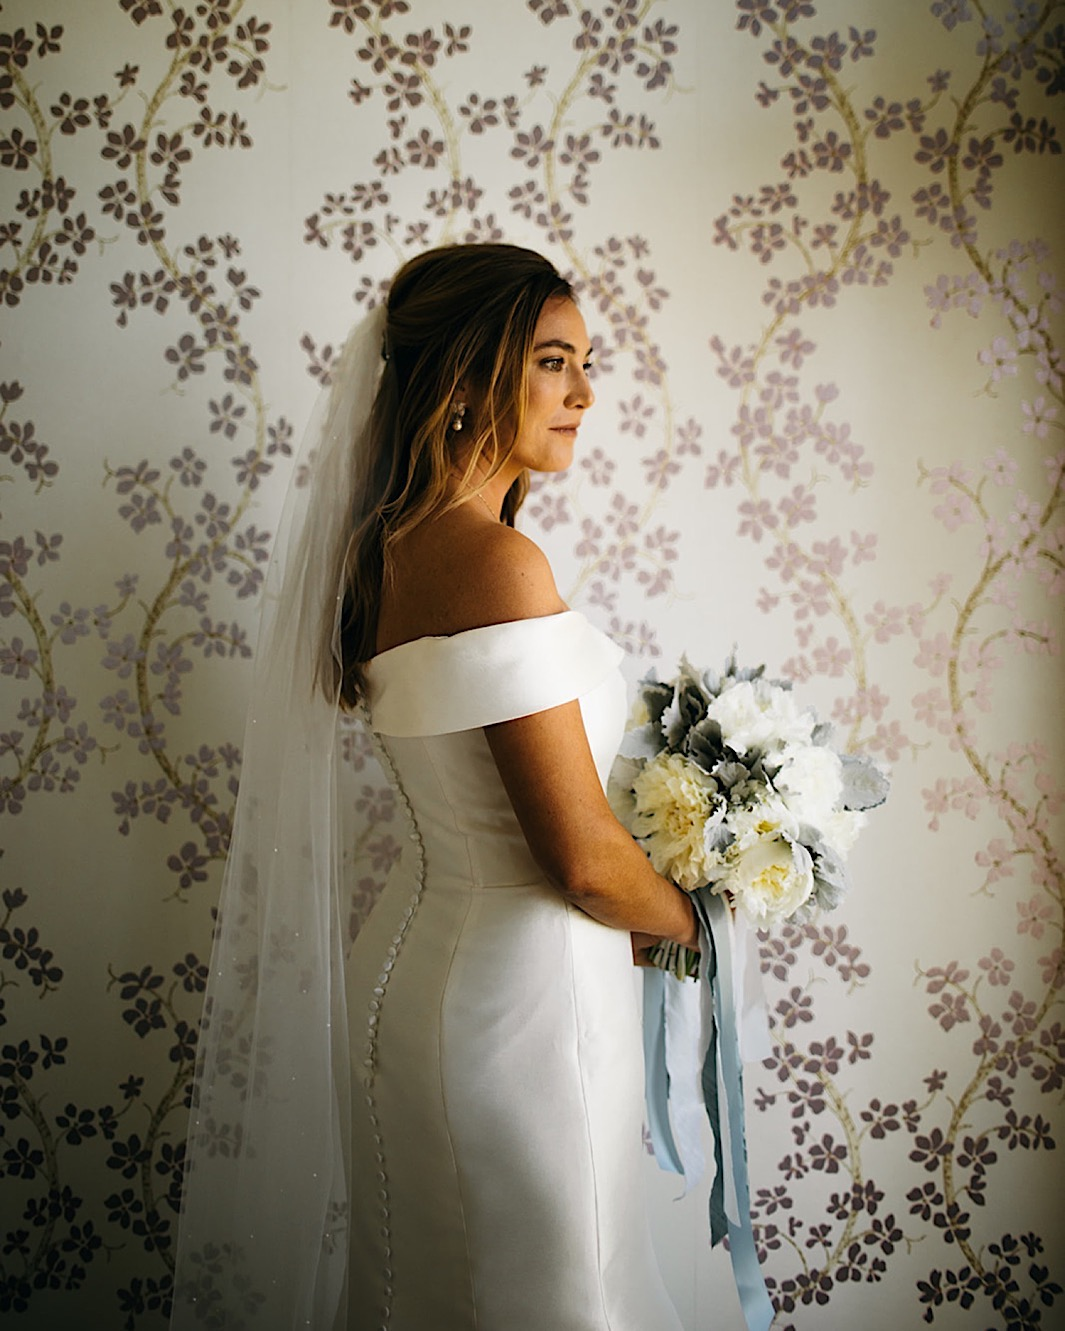 A bride poses with her blue and white bouquet in front on a floral wallpapered wall.